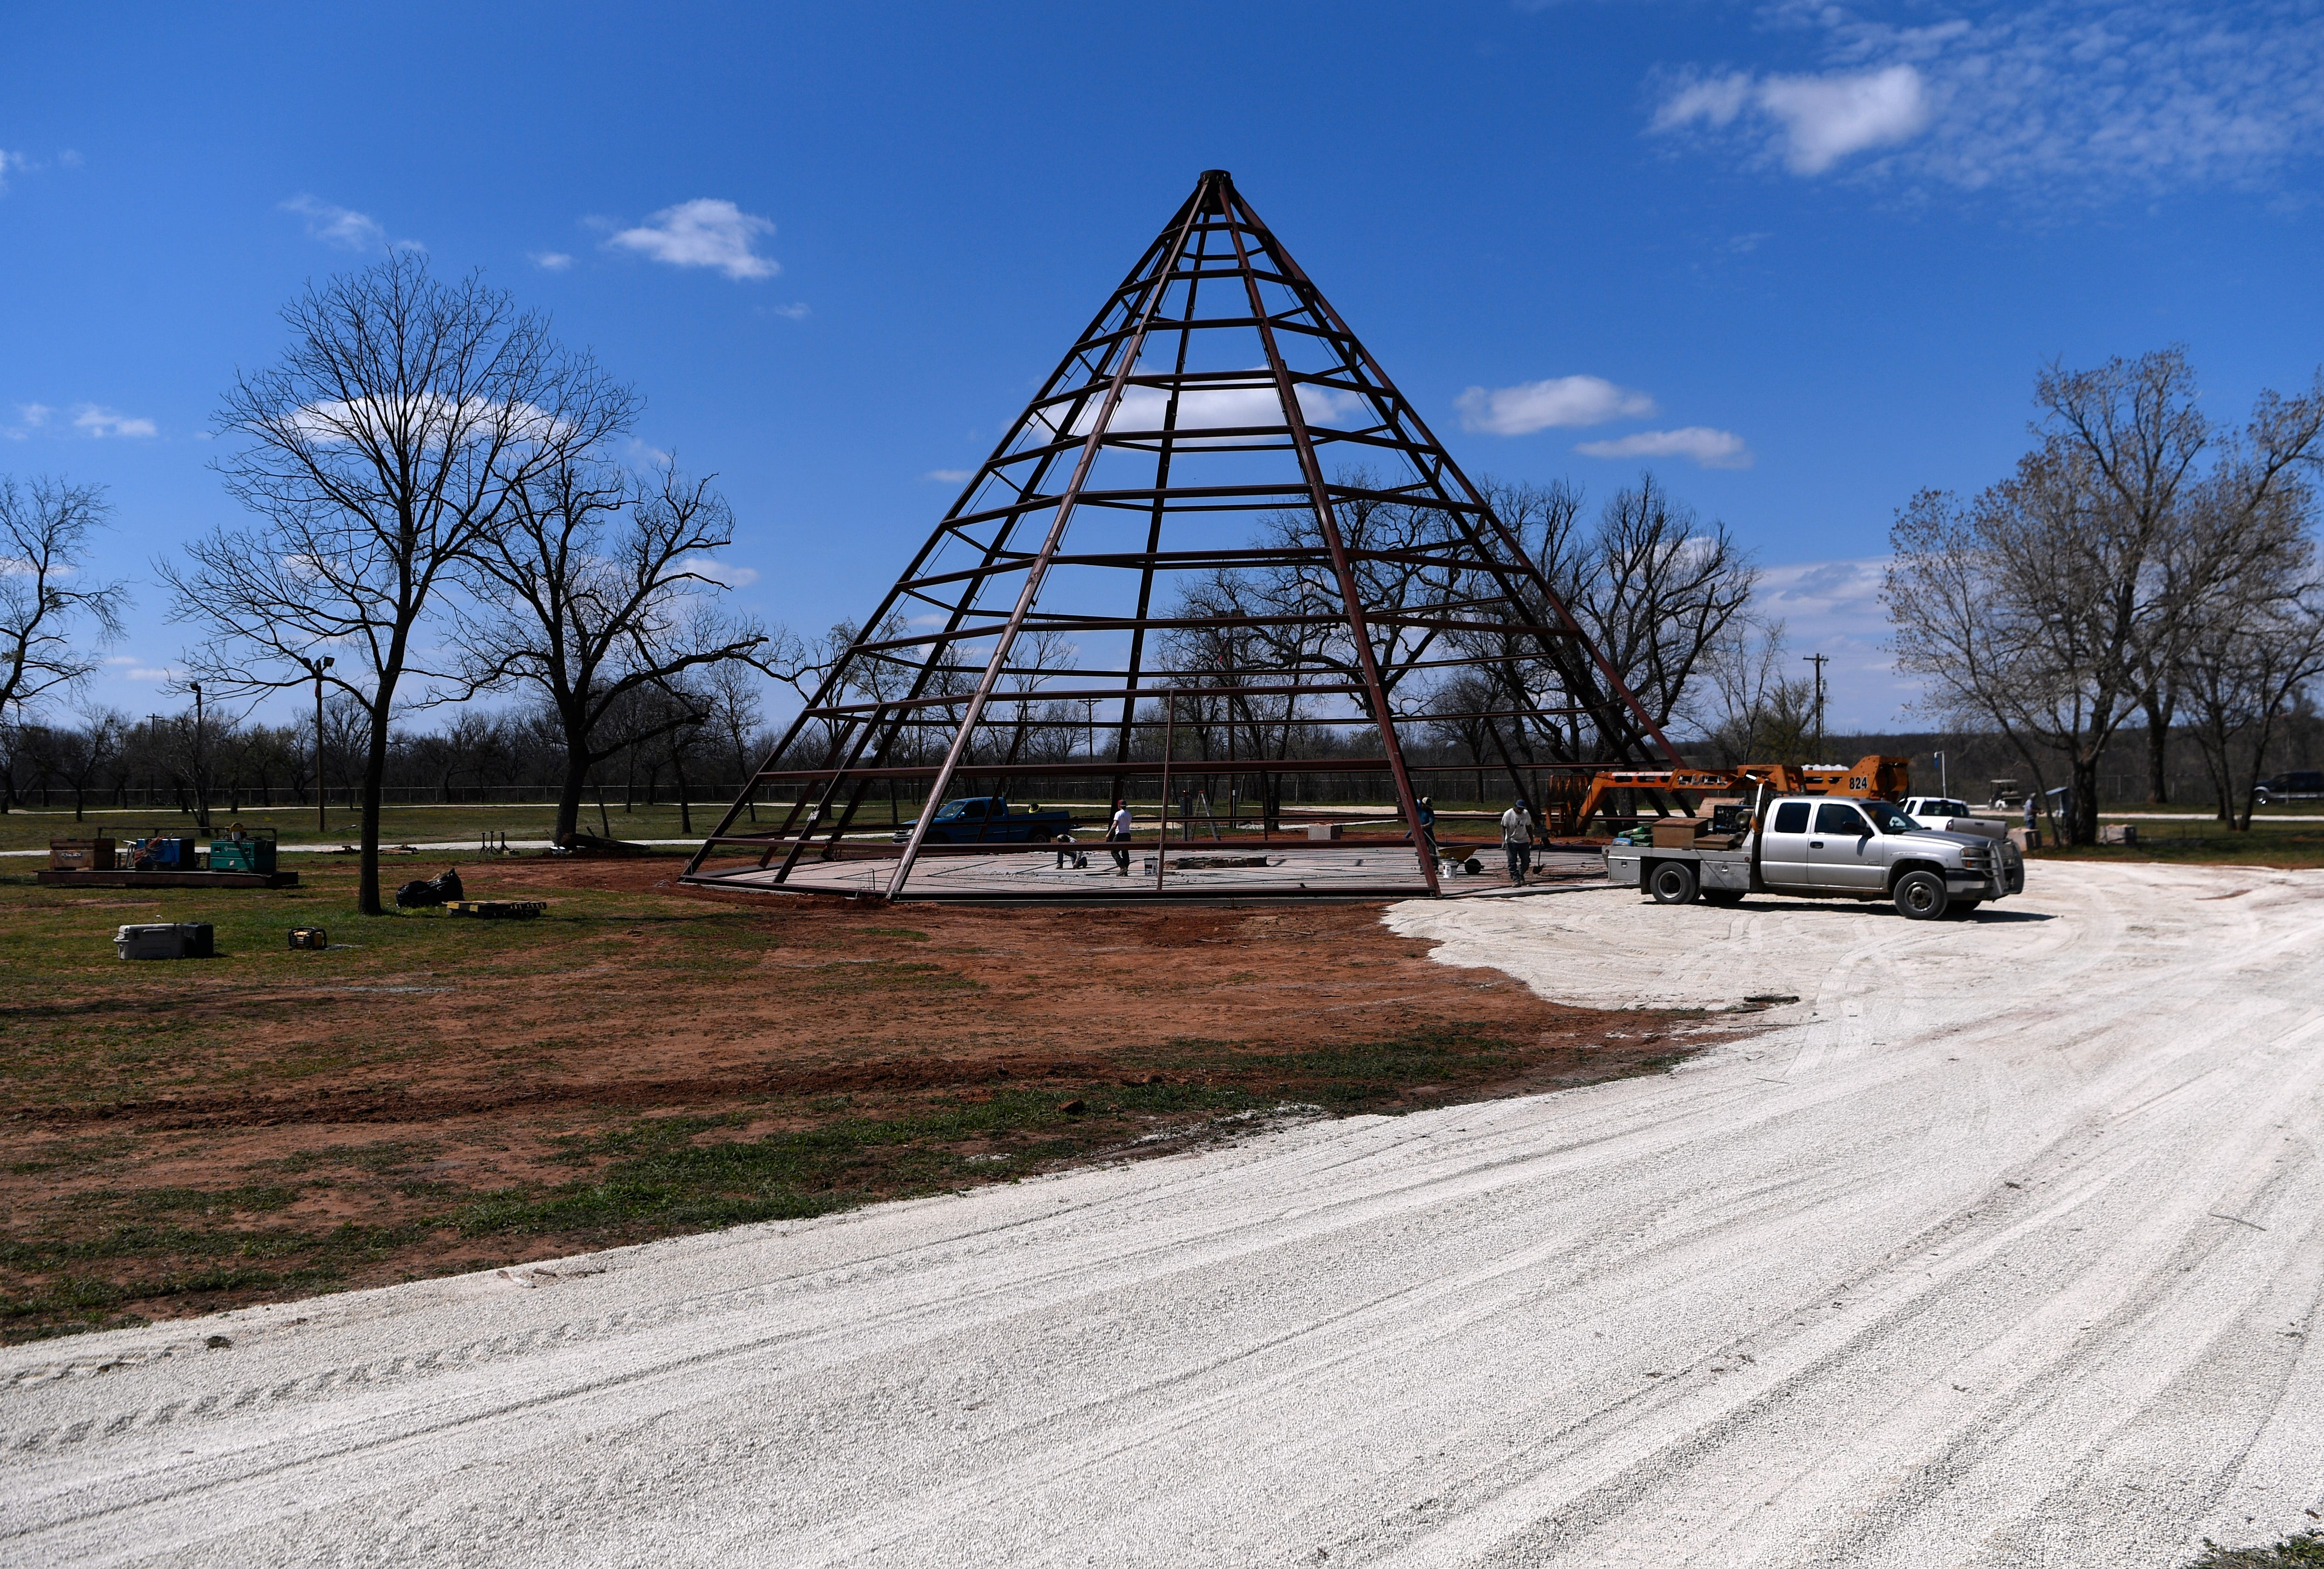 The steel tipi under construction Wednesday at the Back Porch of Texas. Plans are for the building to be eventually covered in corrugated tin.